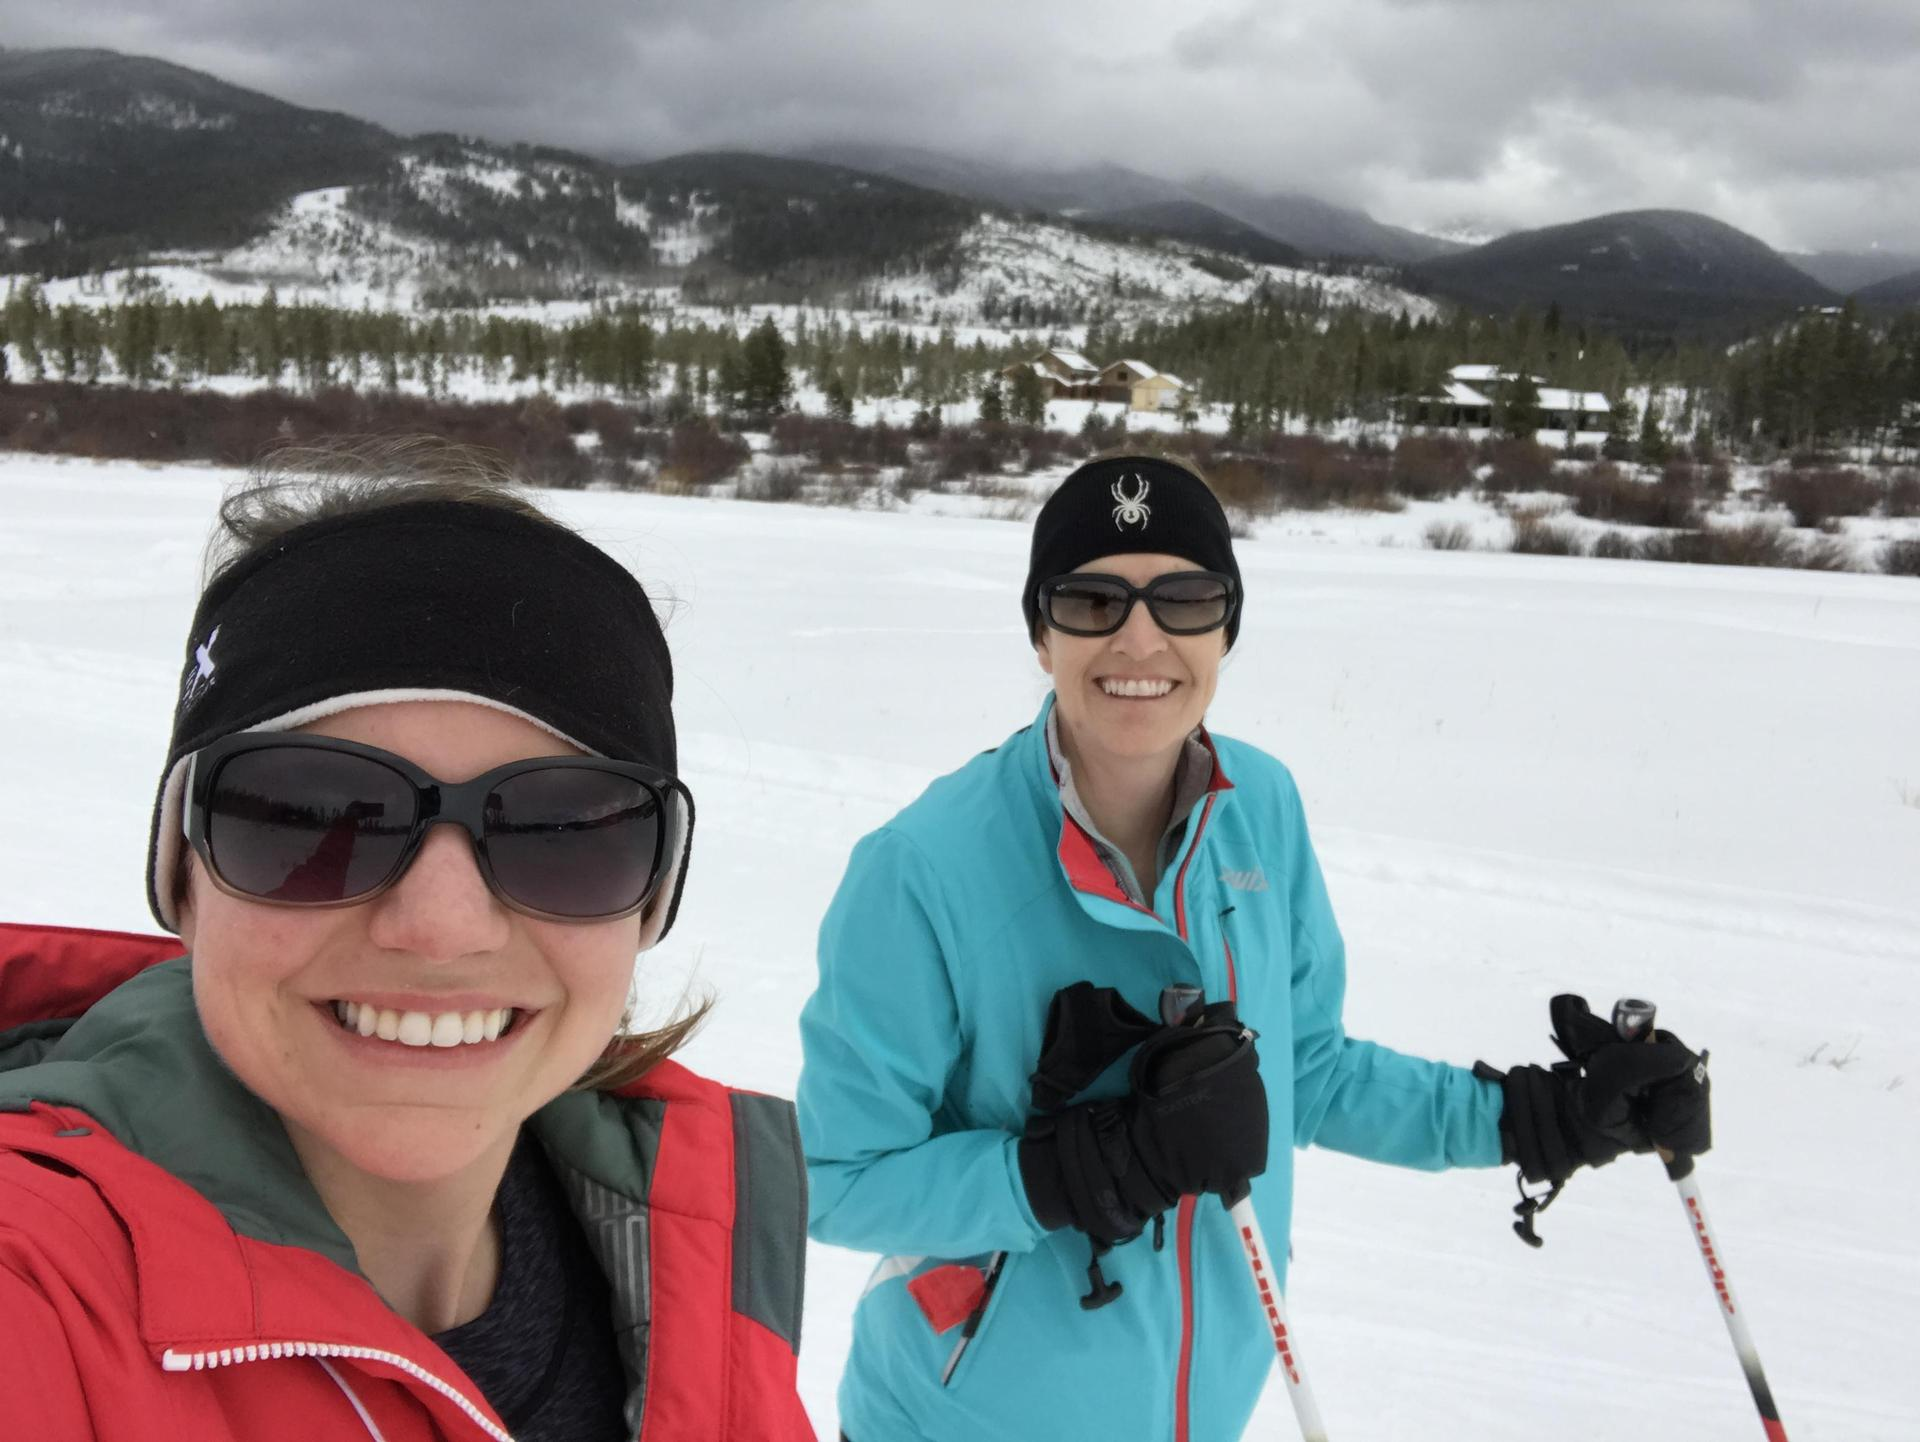 Cross Country skiing with Ms. Cutshall, 2018